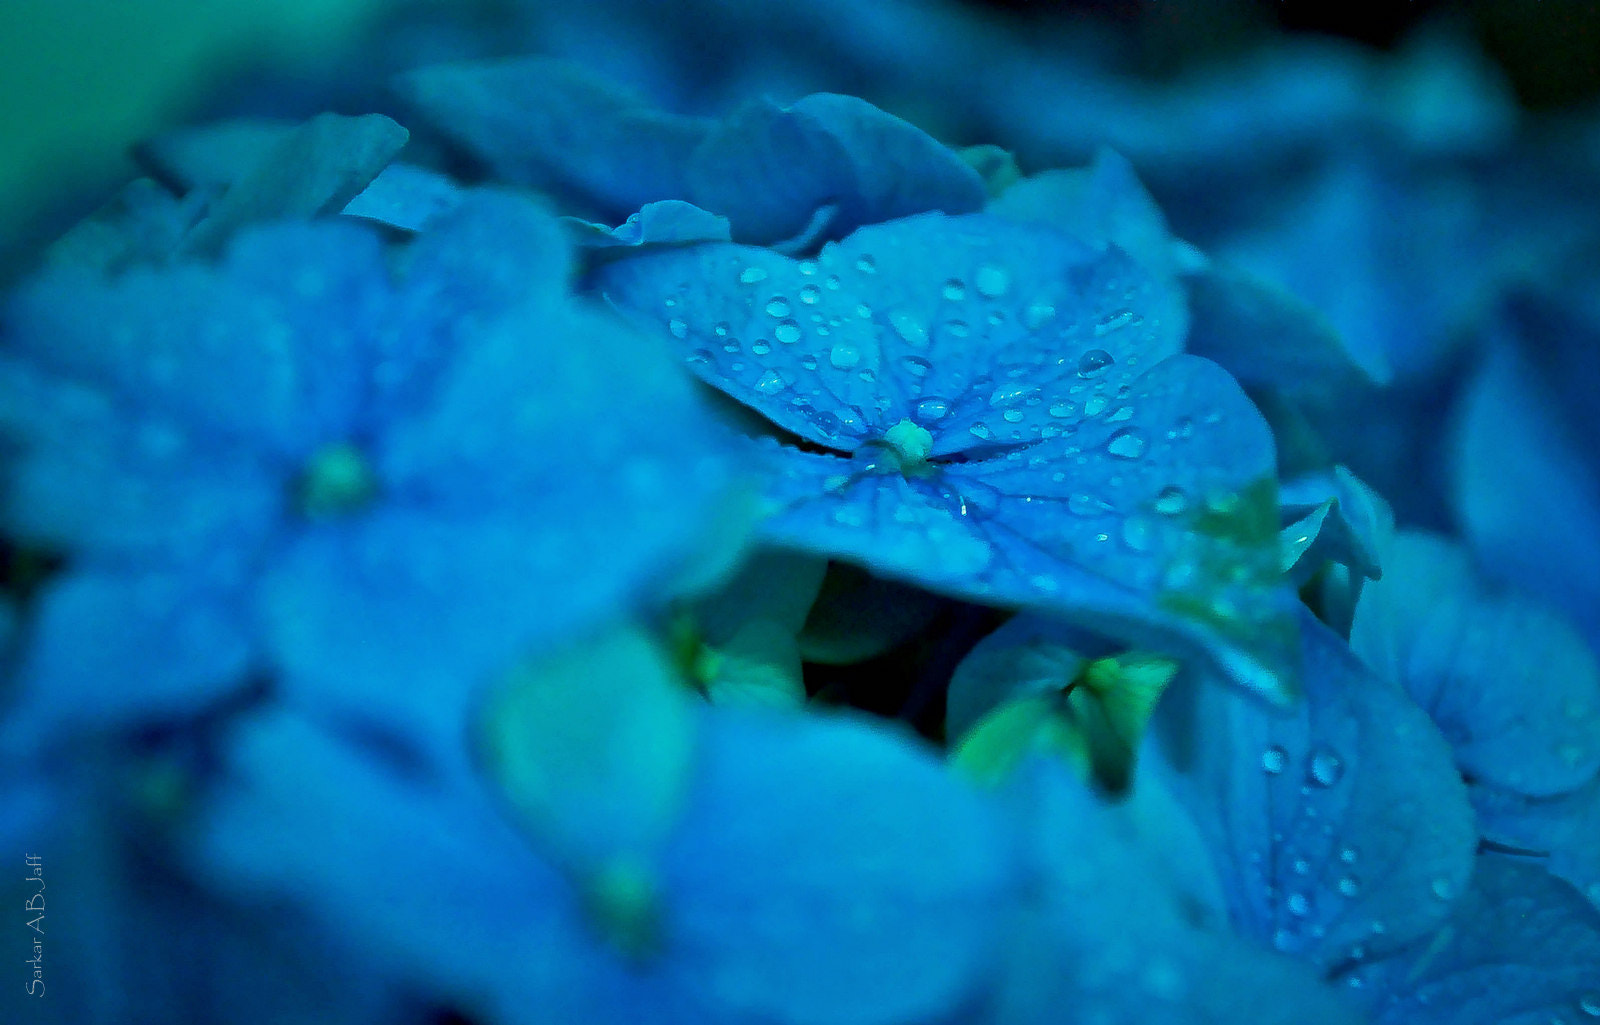 Photograph BLUE by saro jaf on 500px